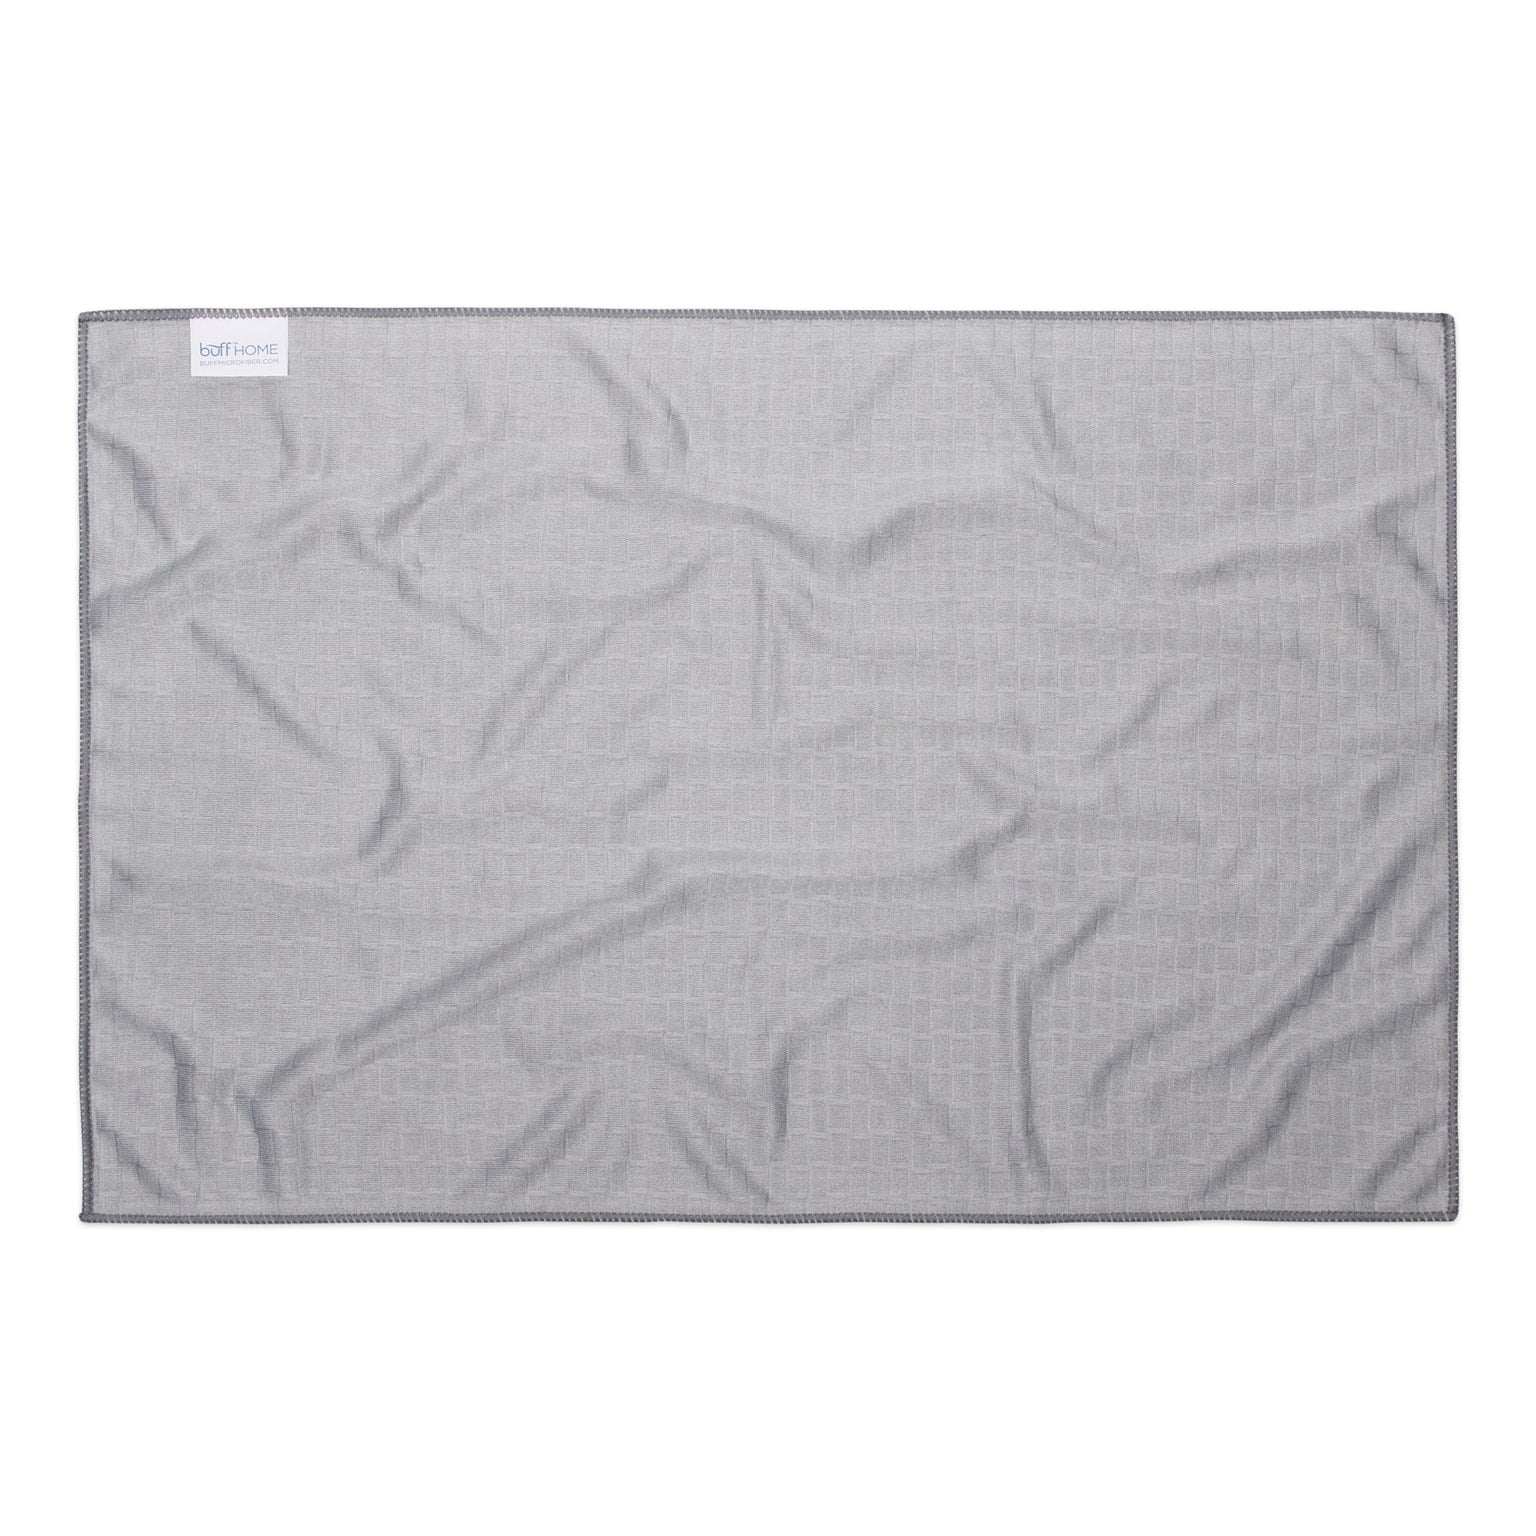 Microfiber Dish Drying Towels Lint Free Style Weave